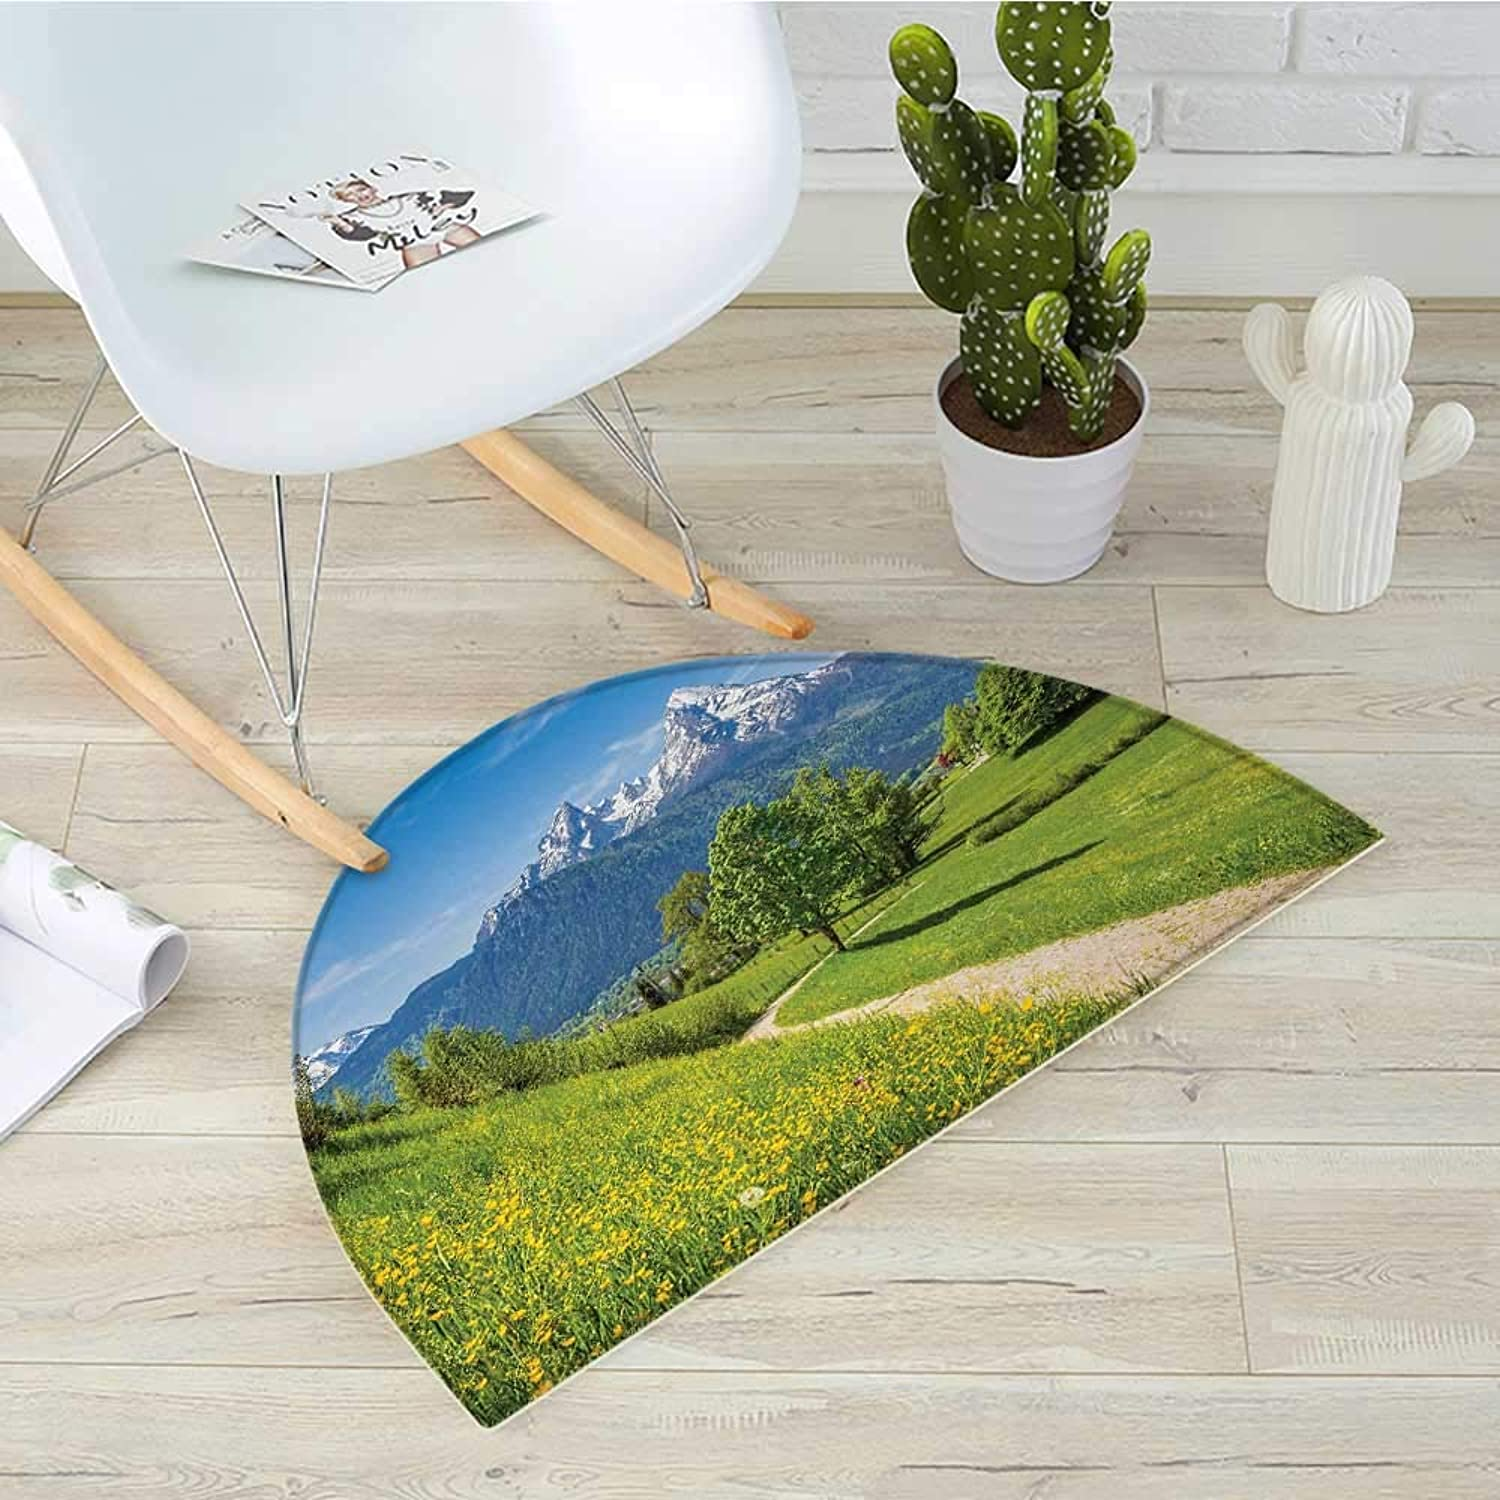 Mountain Semicircular CushionSpring Scenery in Alps with Floral Grass and Snowy Mountain Tops in Rural Village Entry Door Mat H 39.3  xD 59  Multicolor